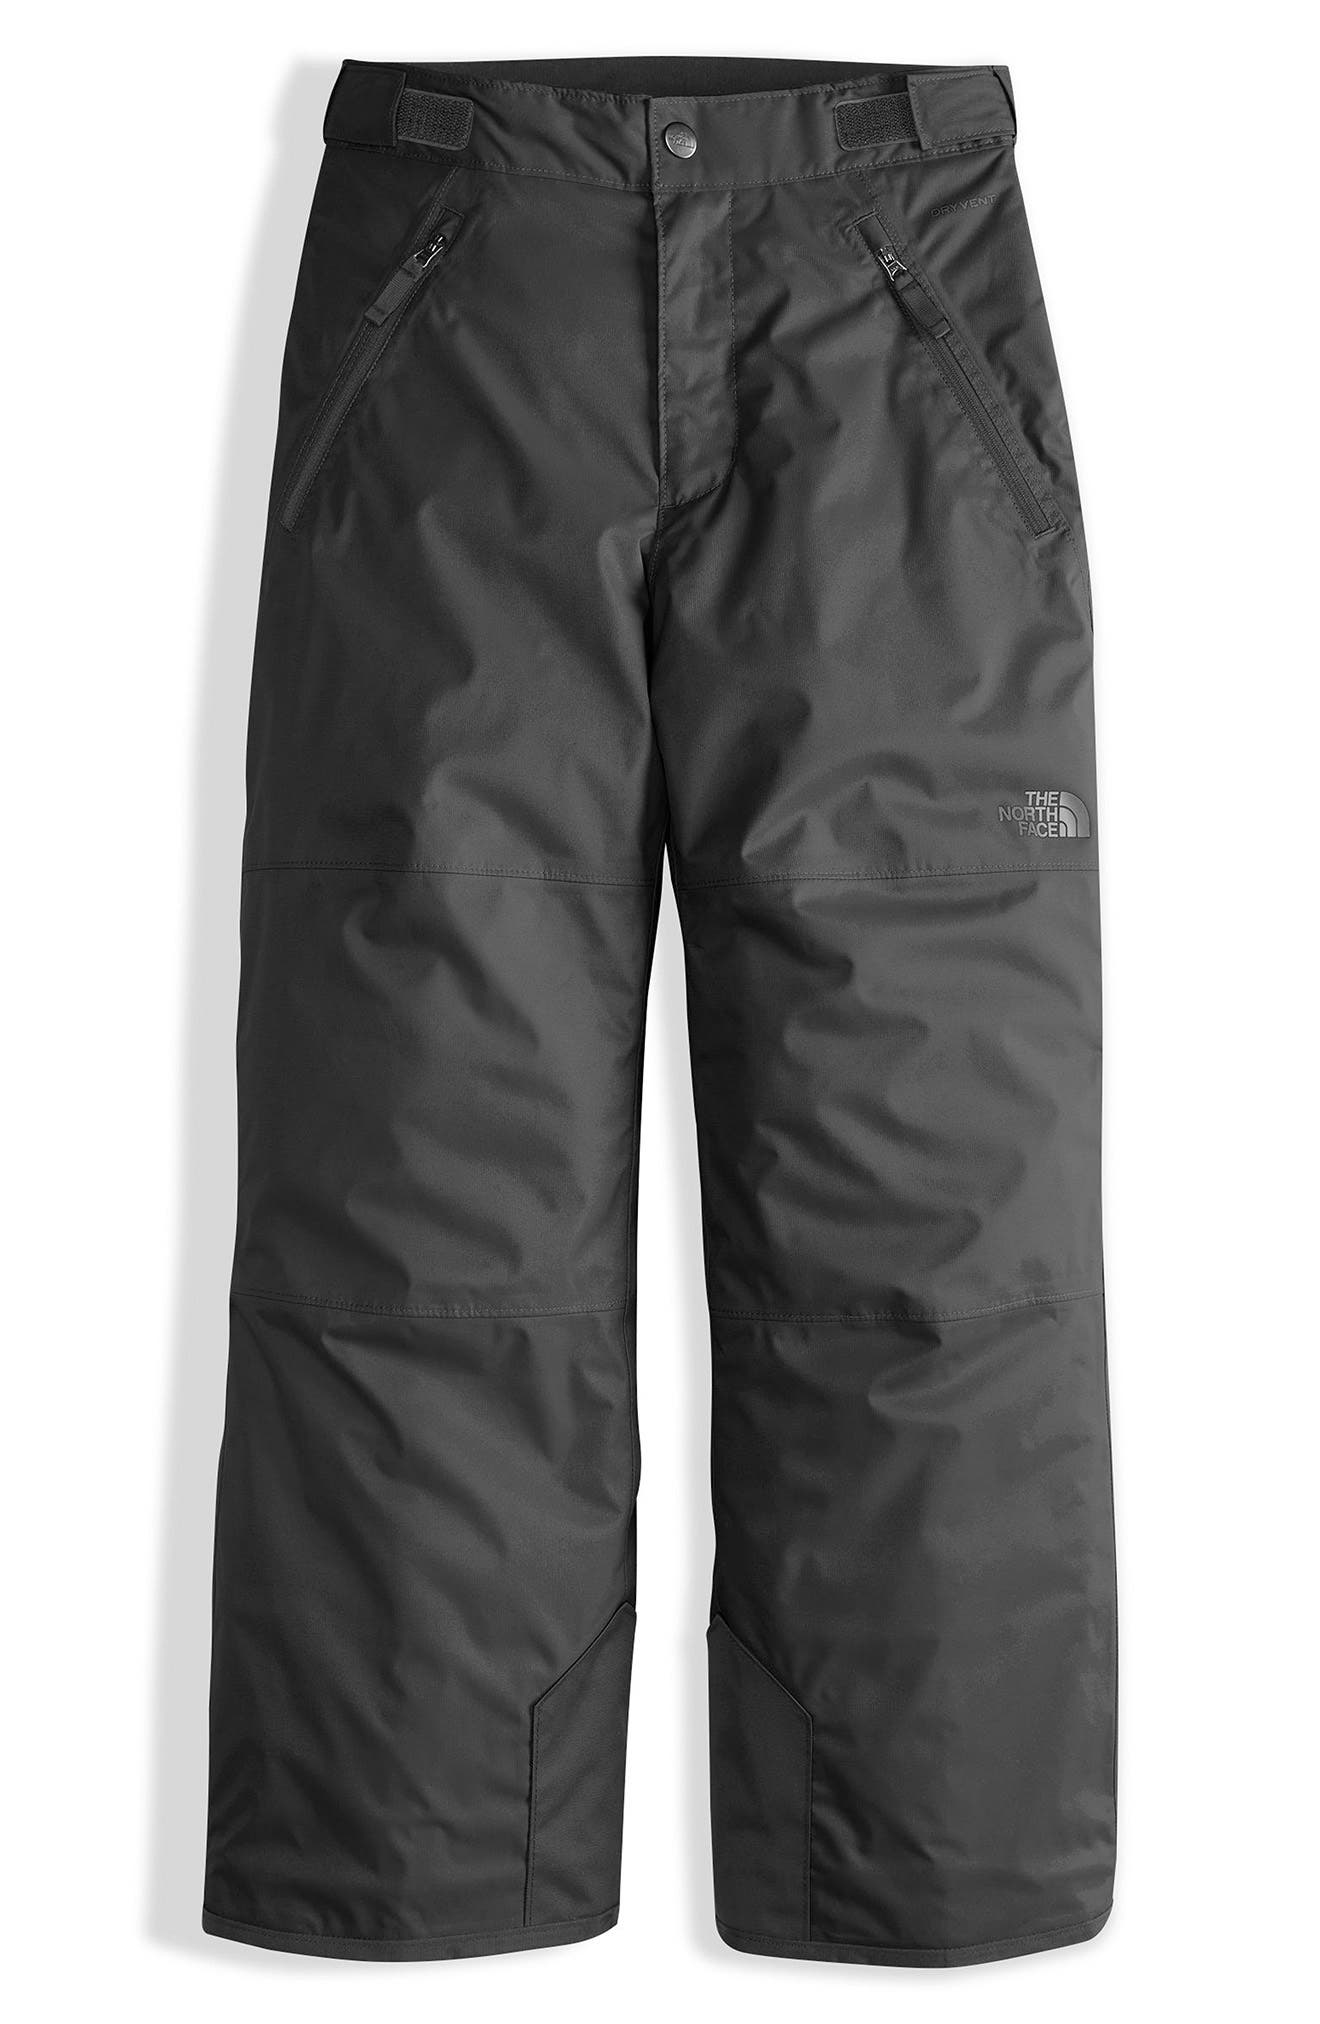 Freedom Waterproof Insulated Pants,                         Main,                         color, Tnf Black